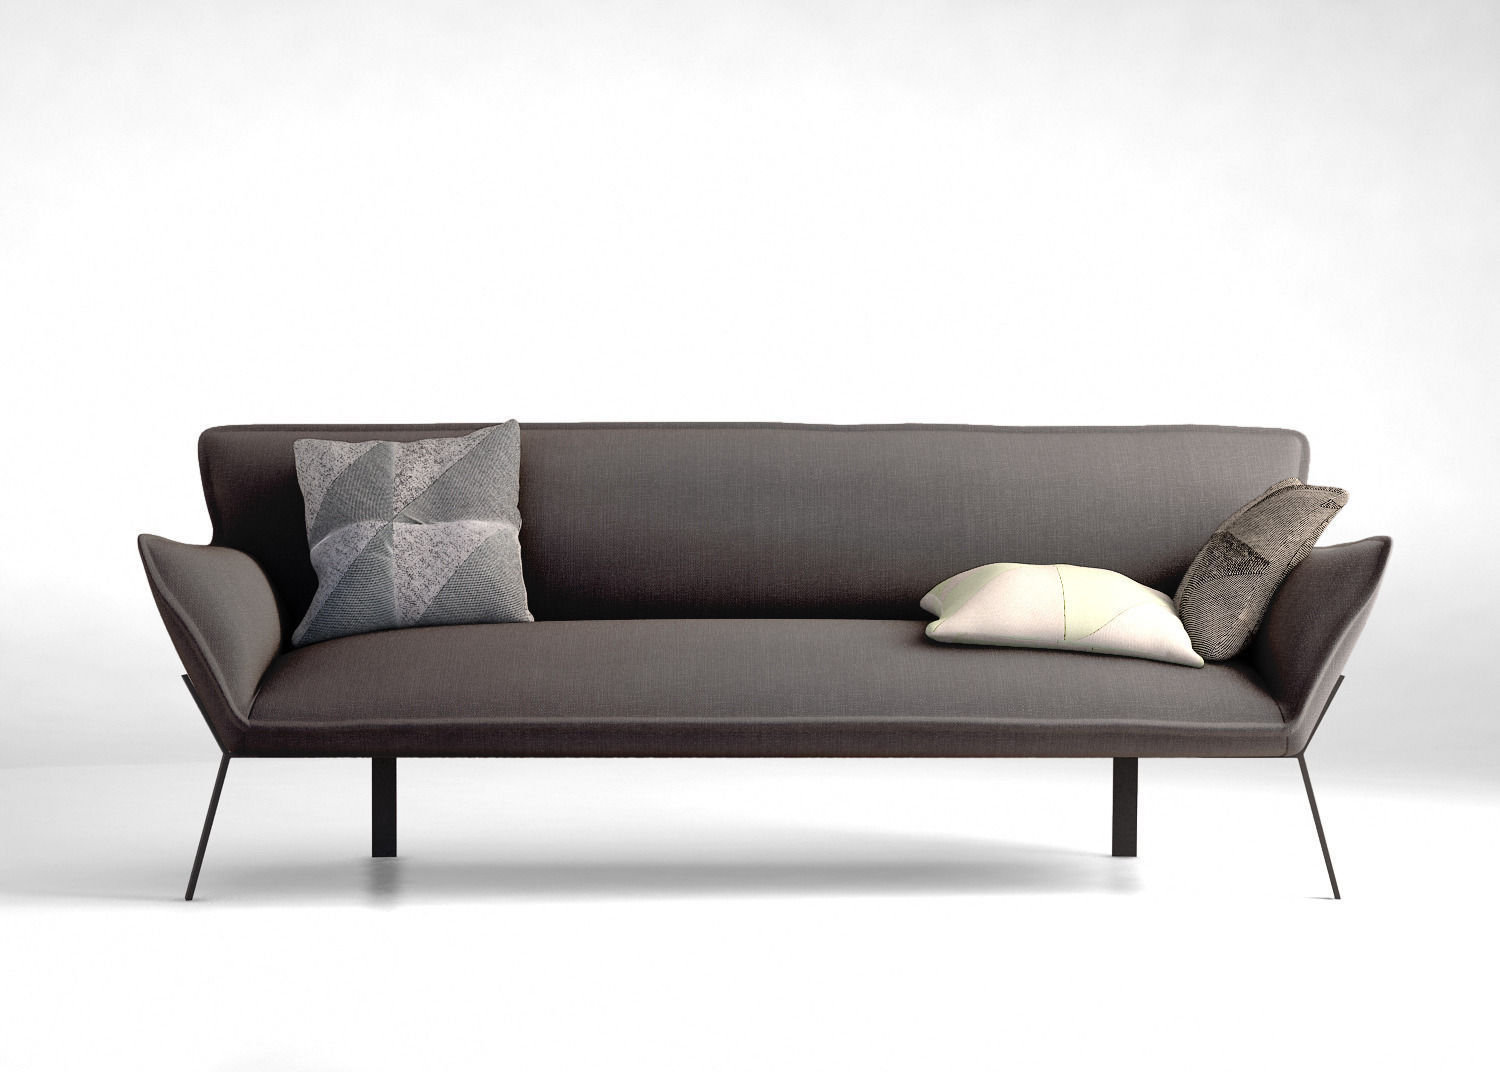 Jardan lewis sofa 3d model max obj mtl tga for Sofa 3d model